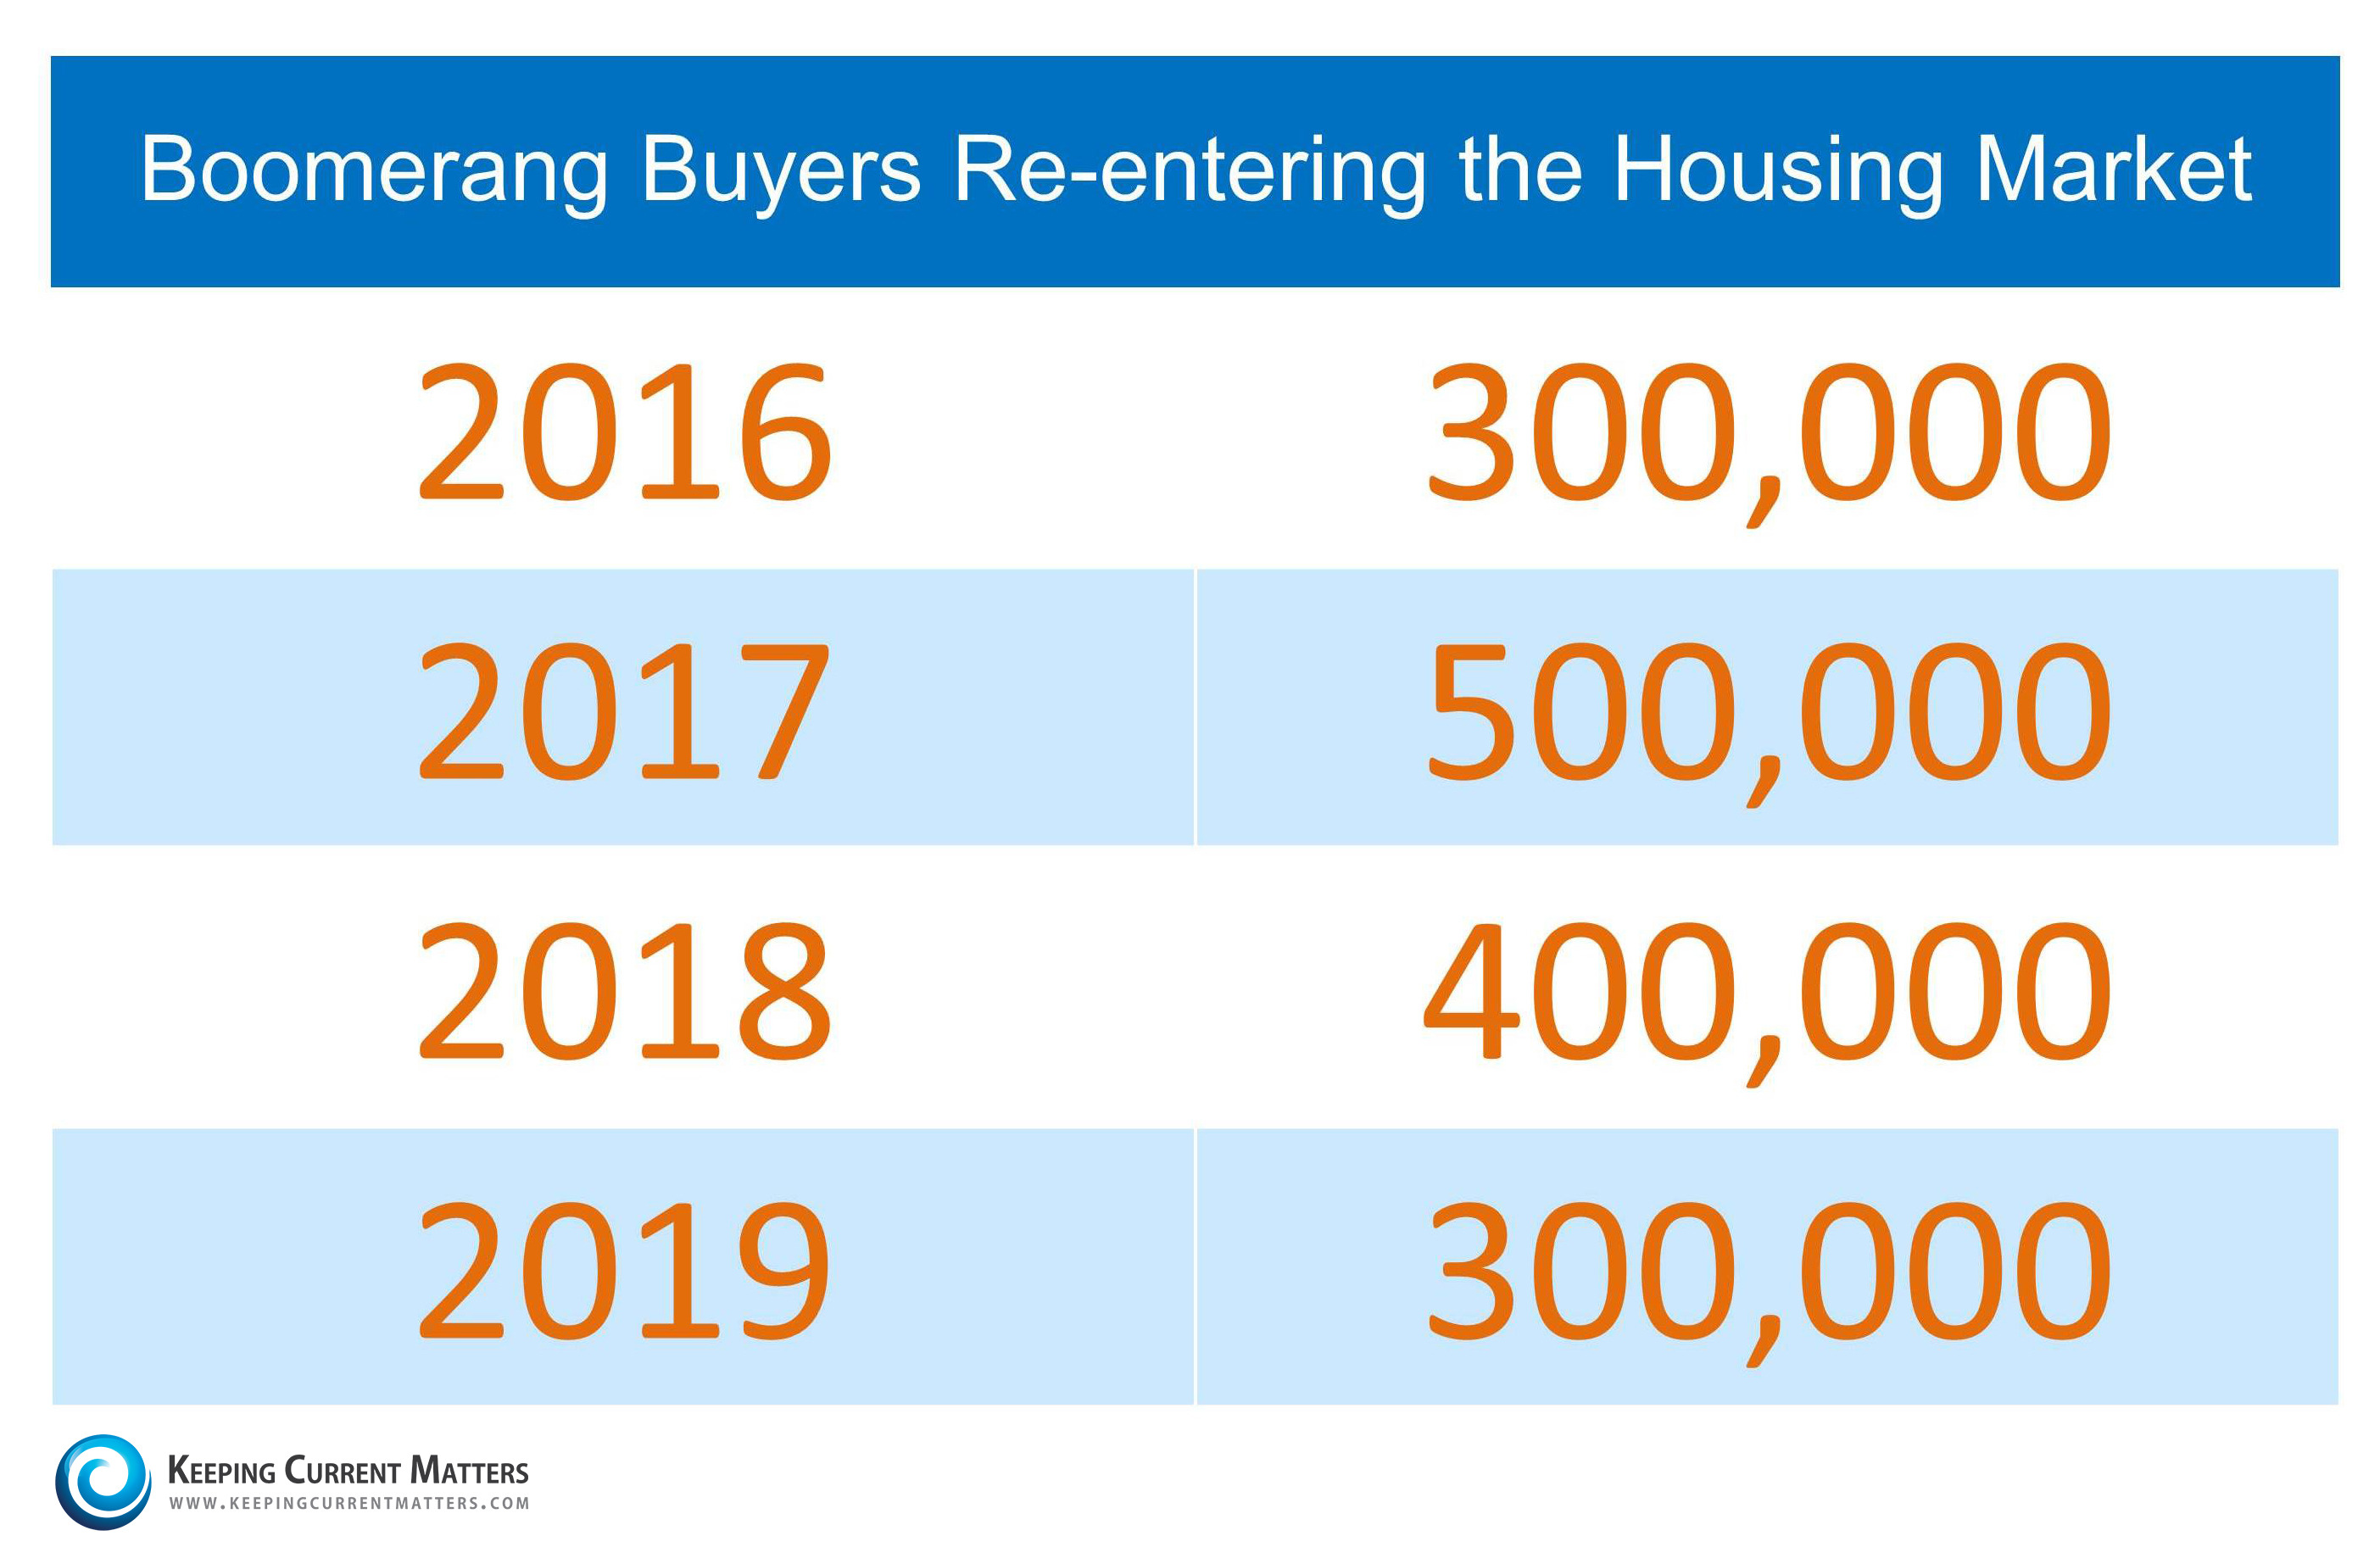 Boomerang Buyers to Enter the Real Estate Market